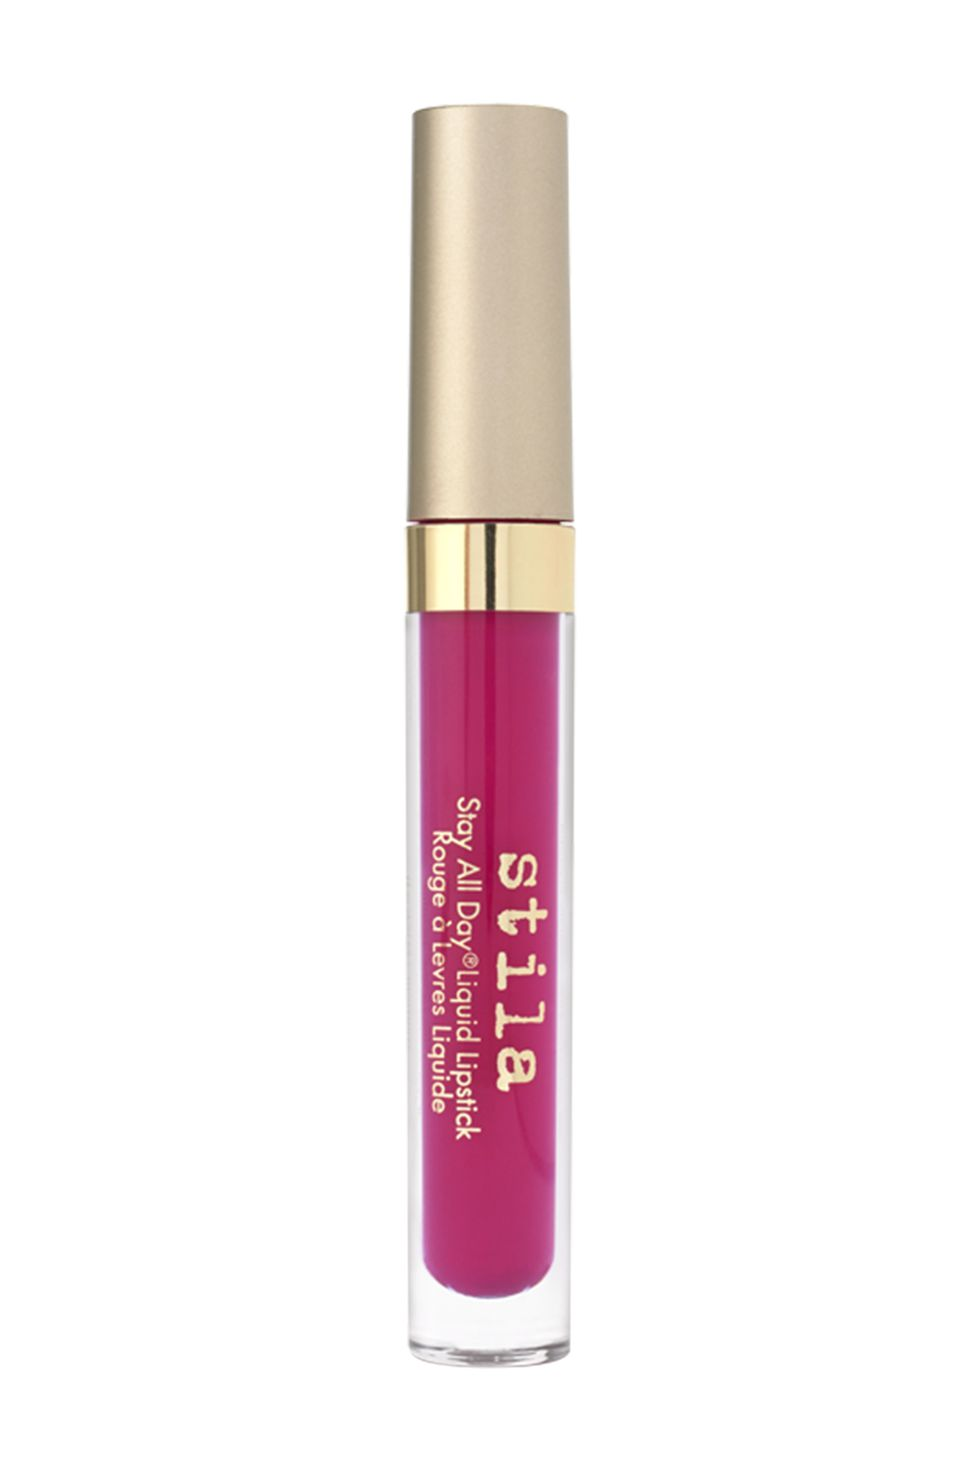 Stila All Day Liquid Lipstick in Bella